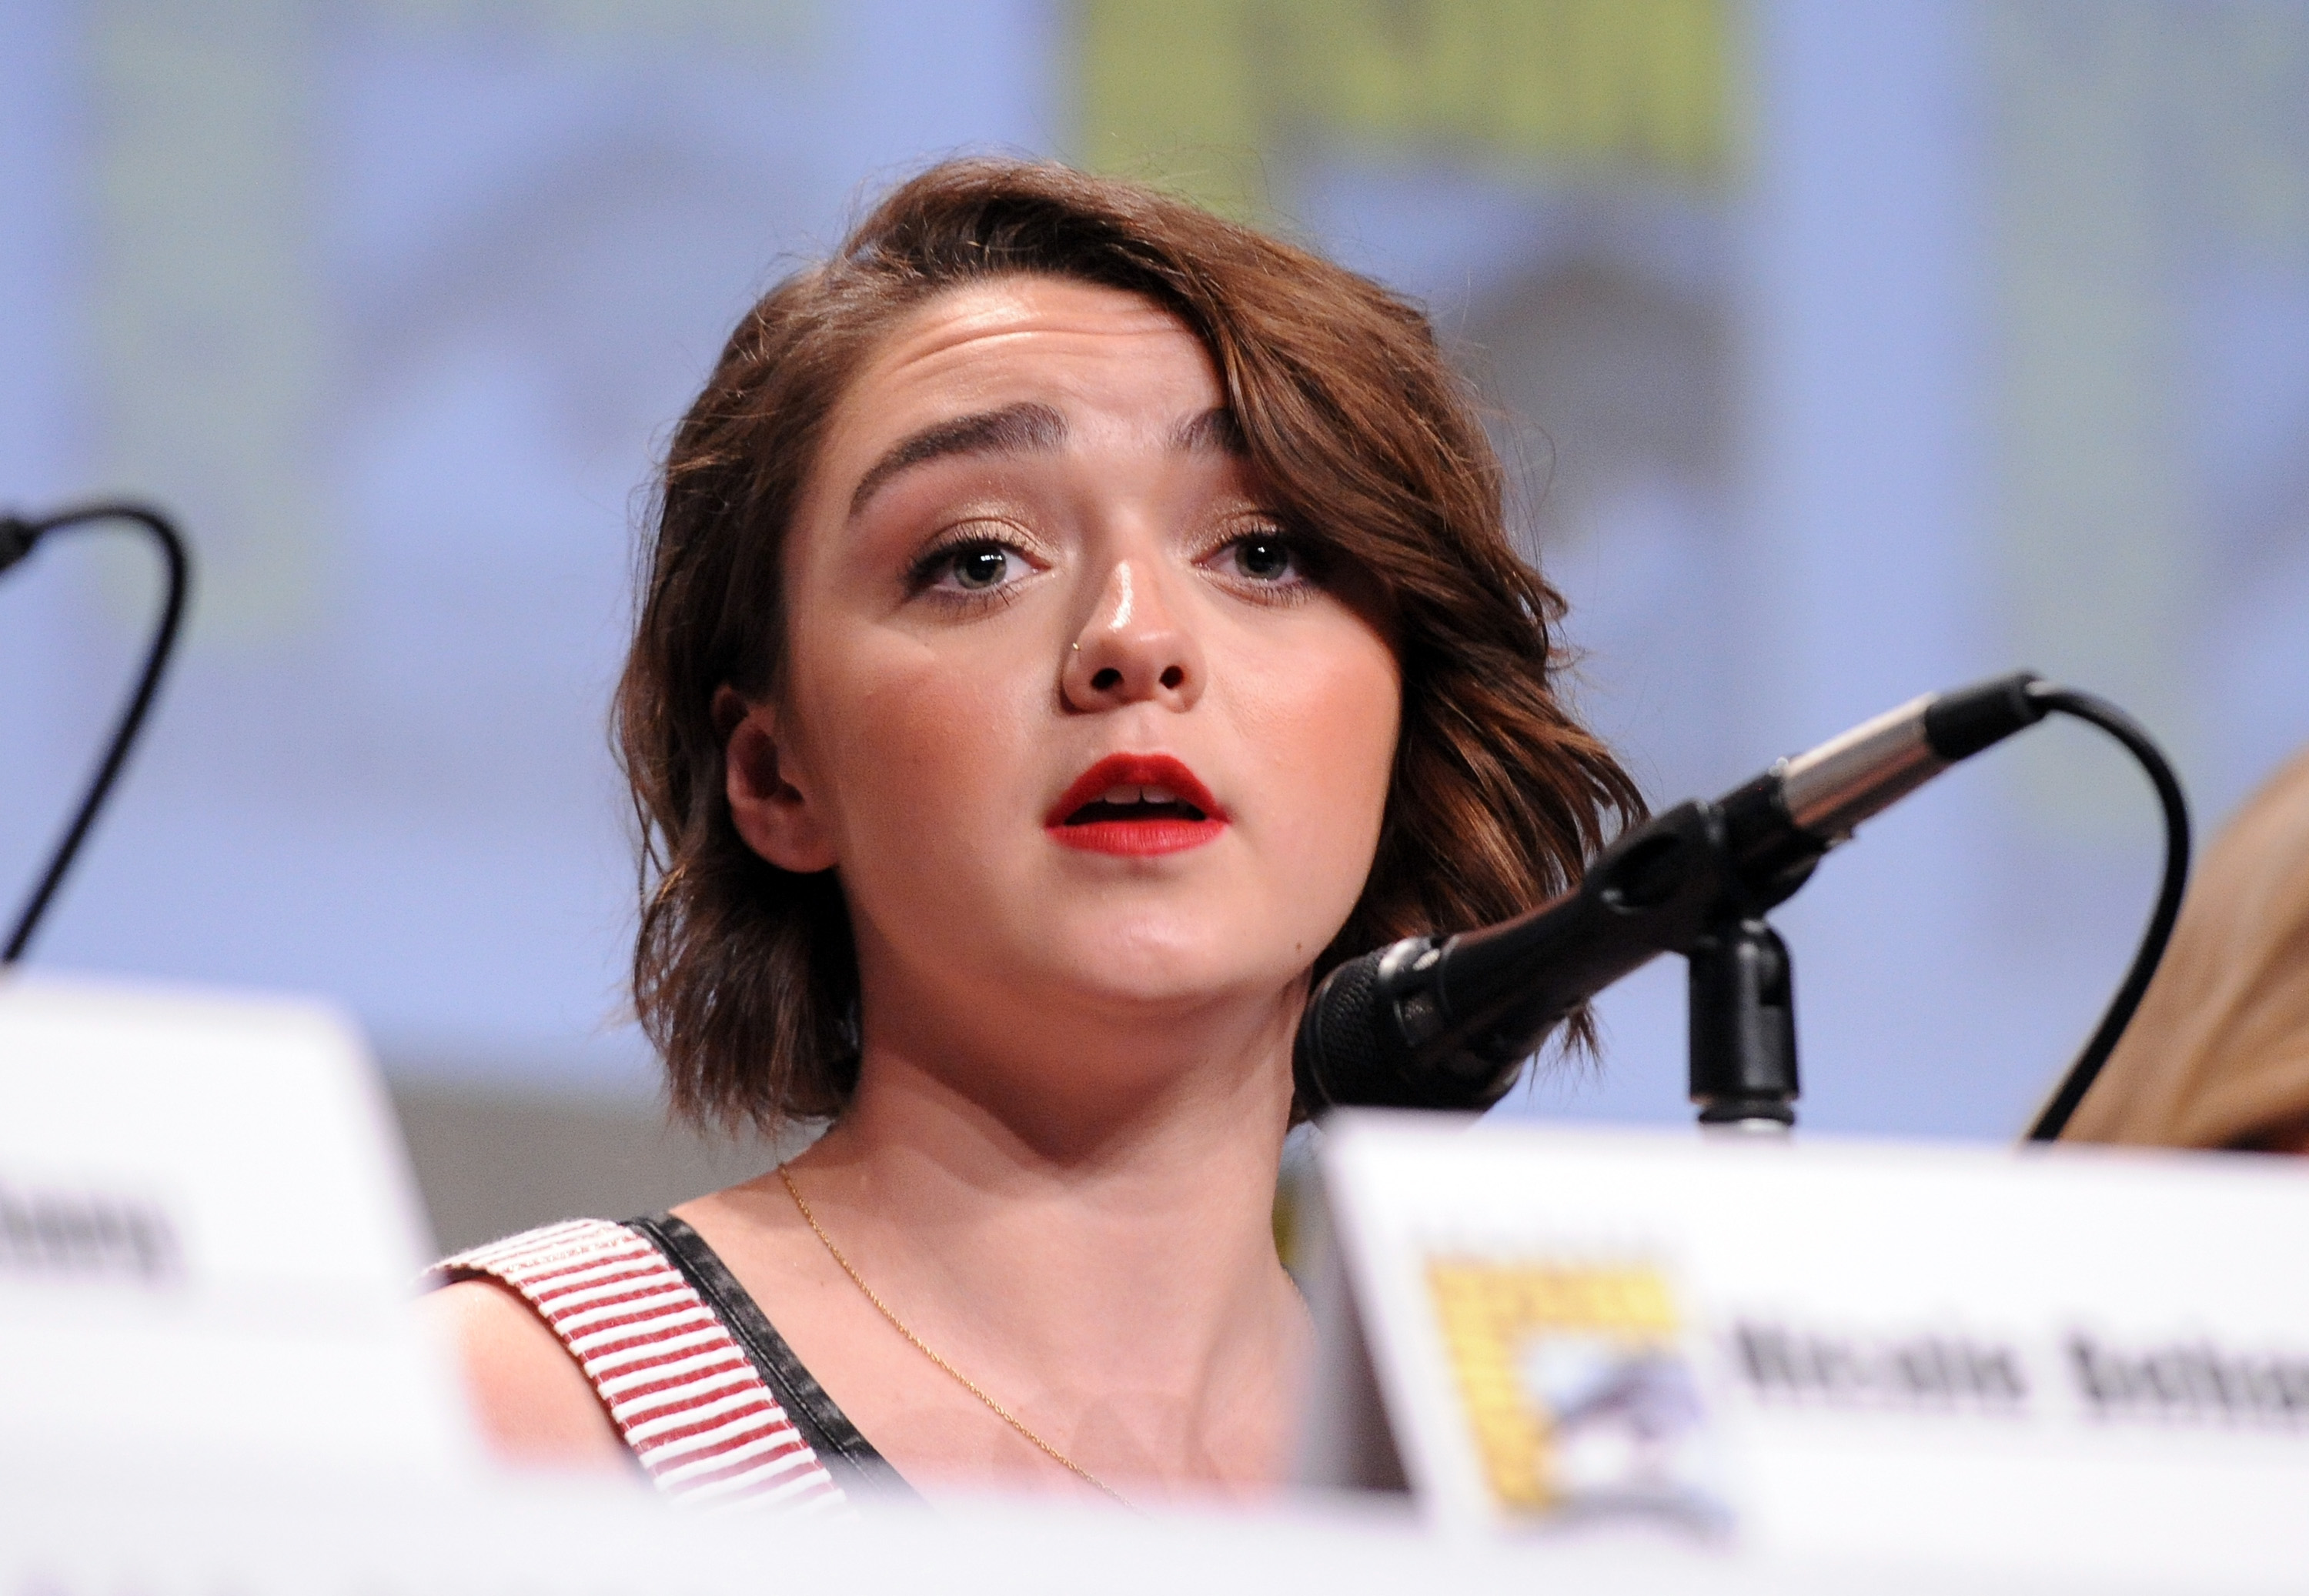 Maisie Williams attends the Entertainment Weekly: Women Who Kick Ass panel and presentation and presentation during Comic-Con International 2014 on July 26 in San Diego, California.